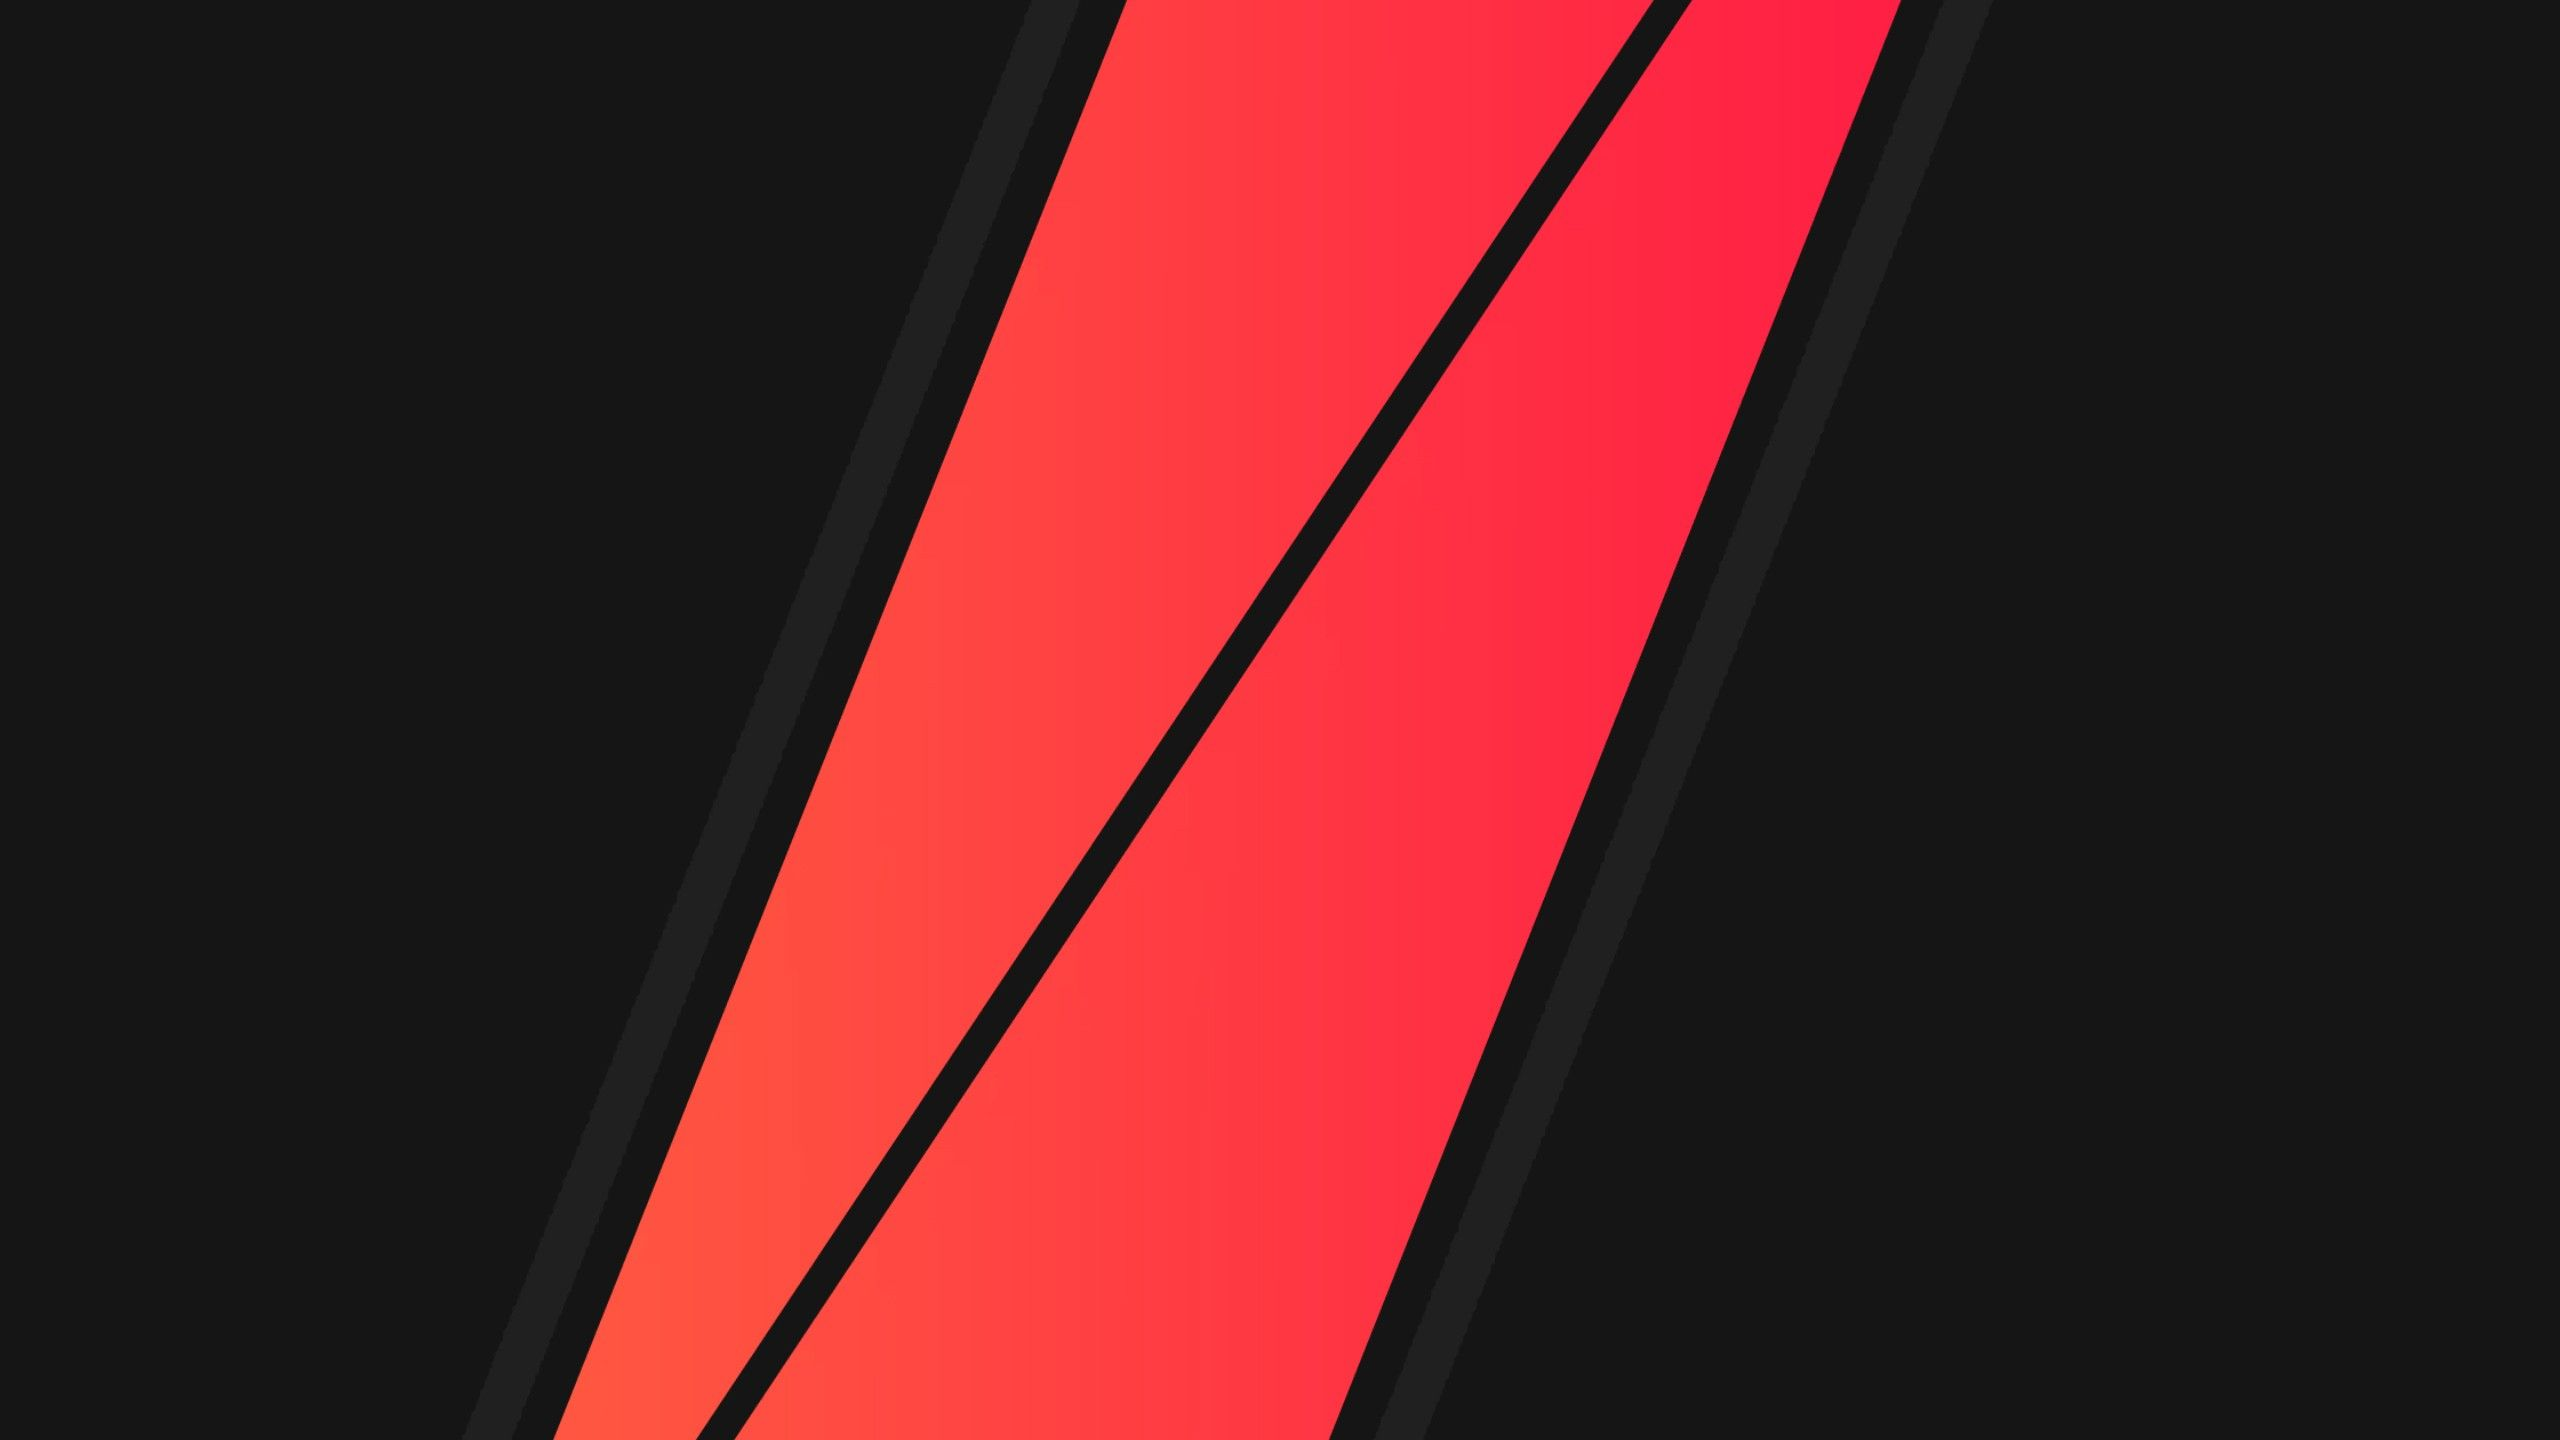 Black Red Minimalist Wallpapers - Top Free Black Red ...